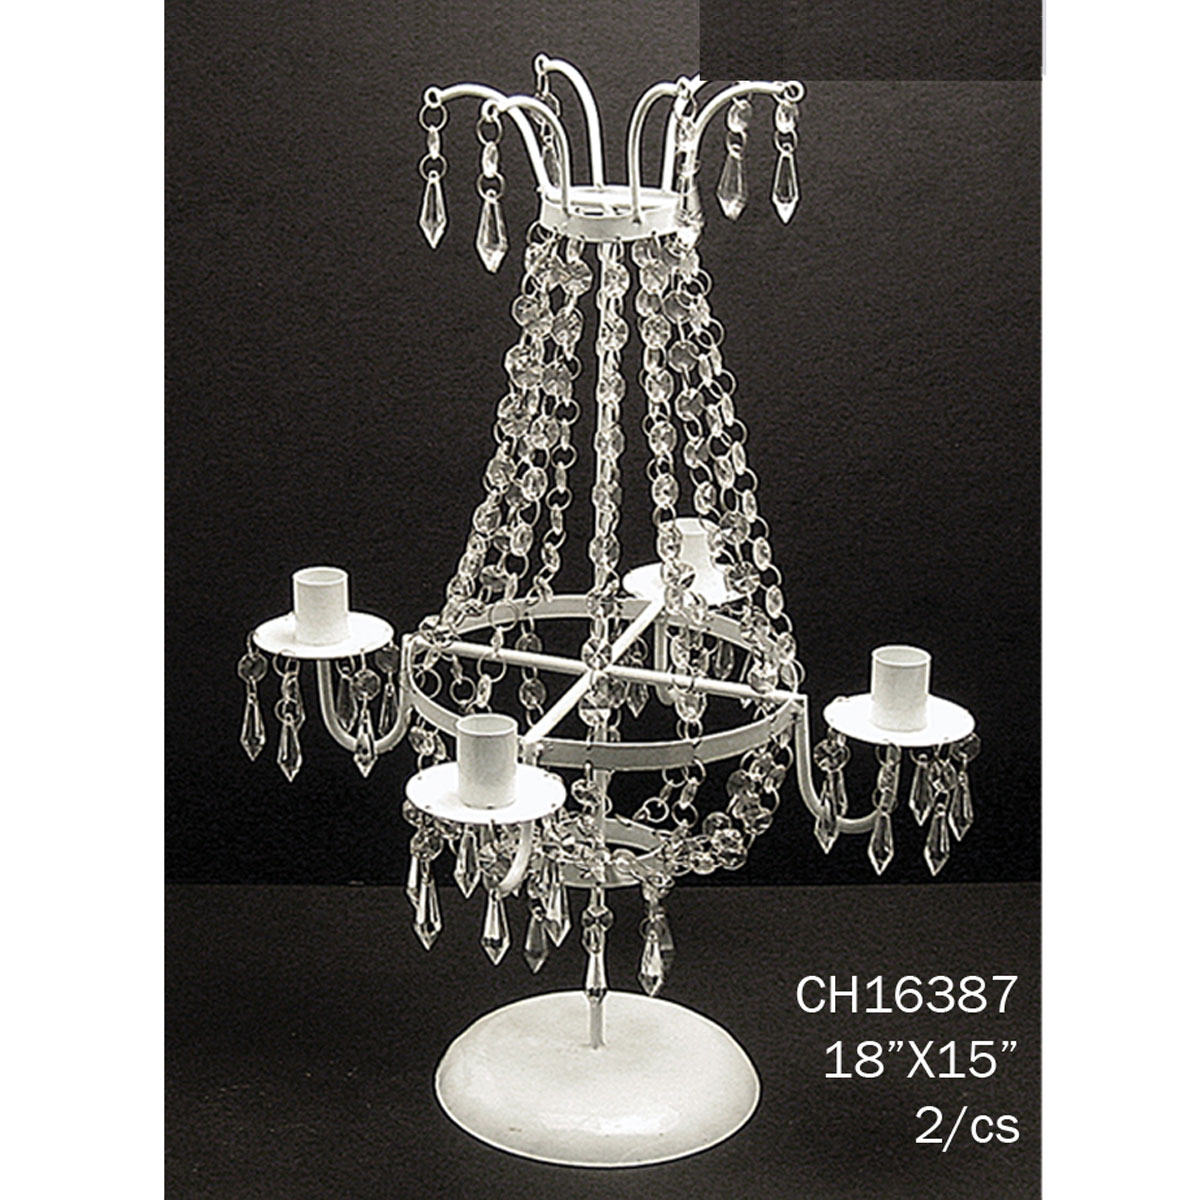 Centerpiece candle holder diy acrylics and white metal